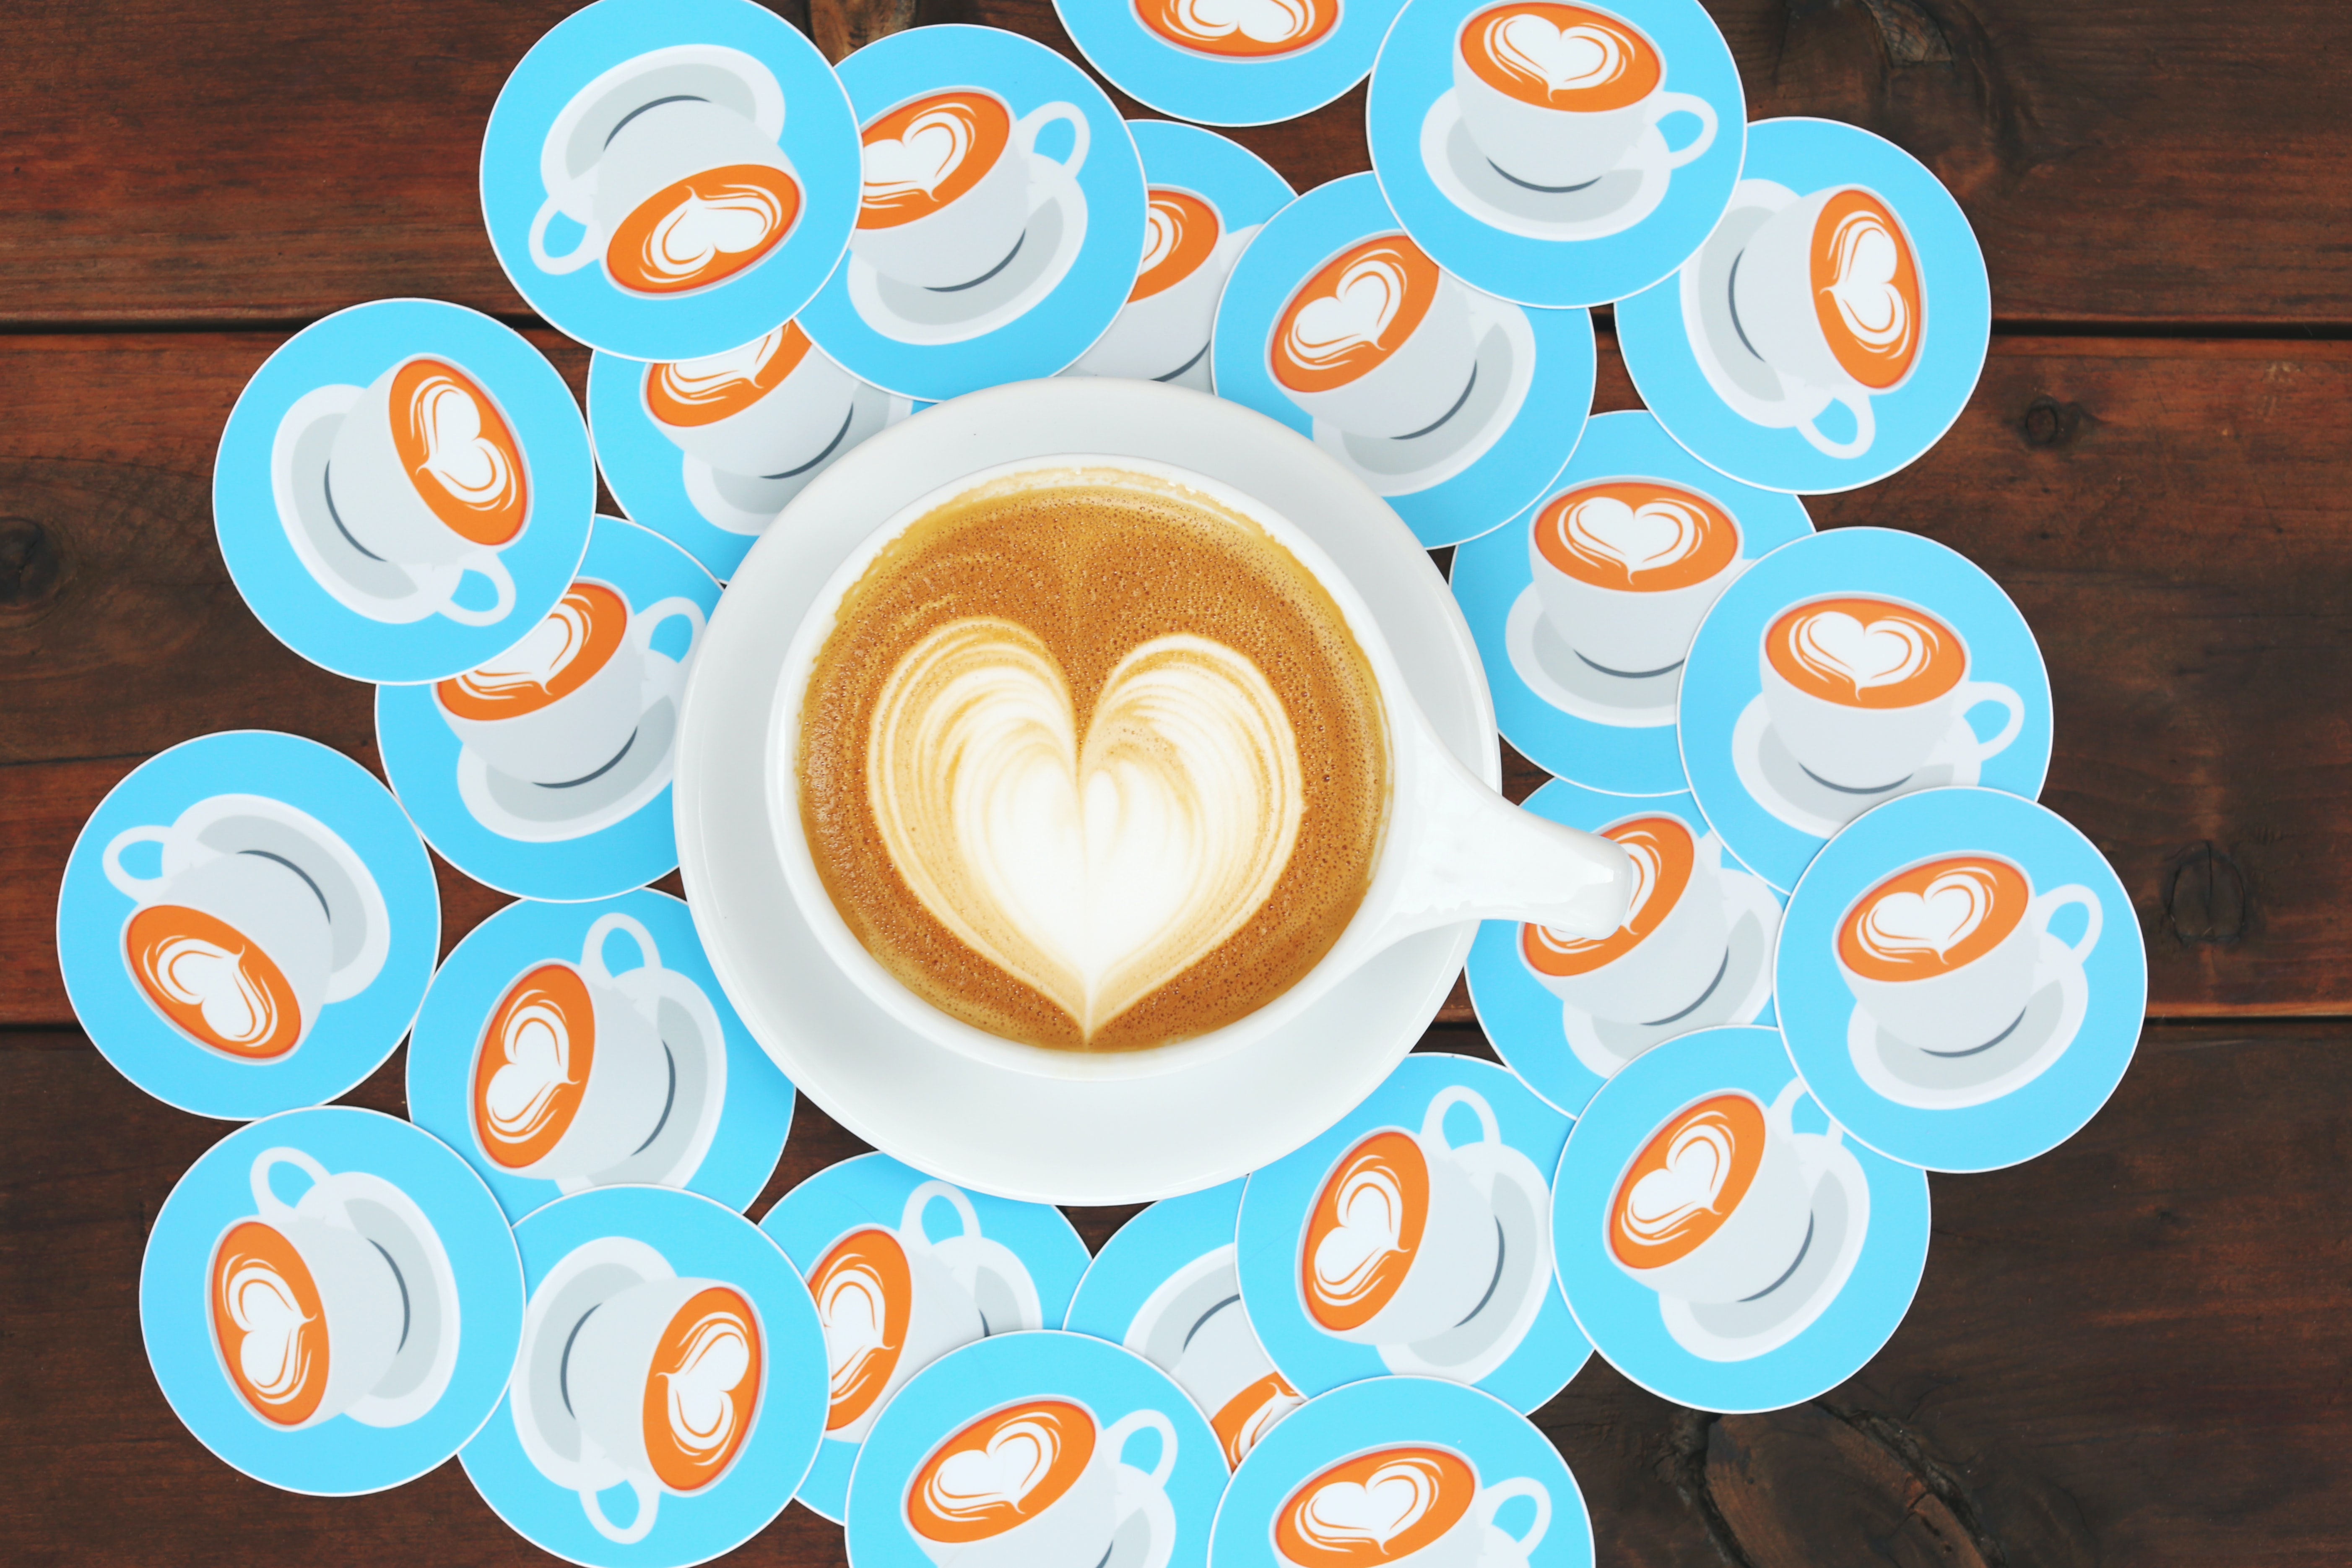 A cup of coffee with latte art in the shape of a heart